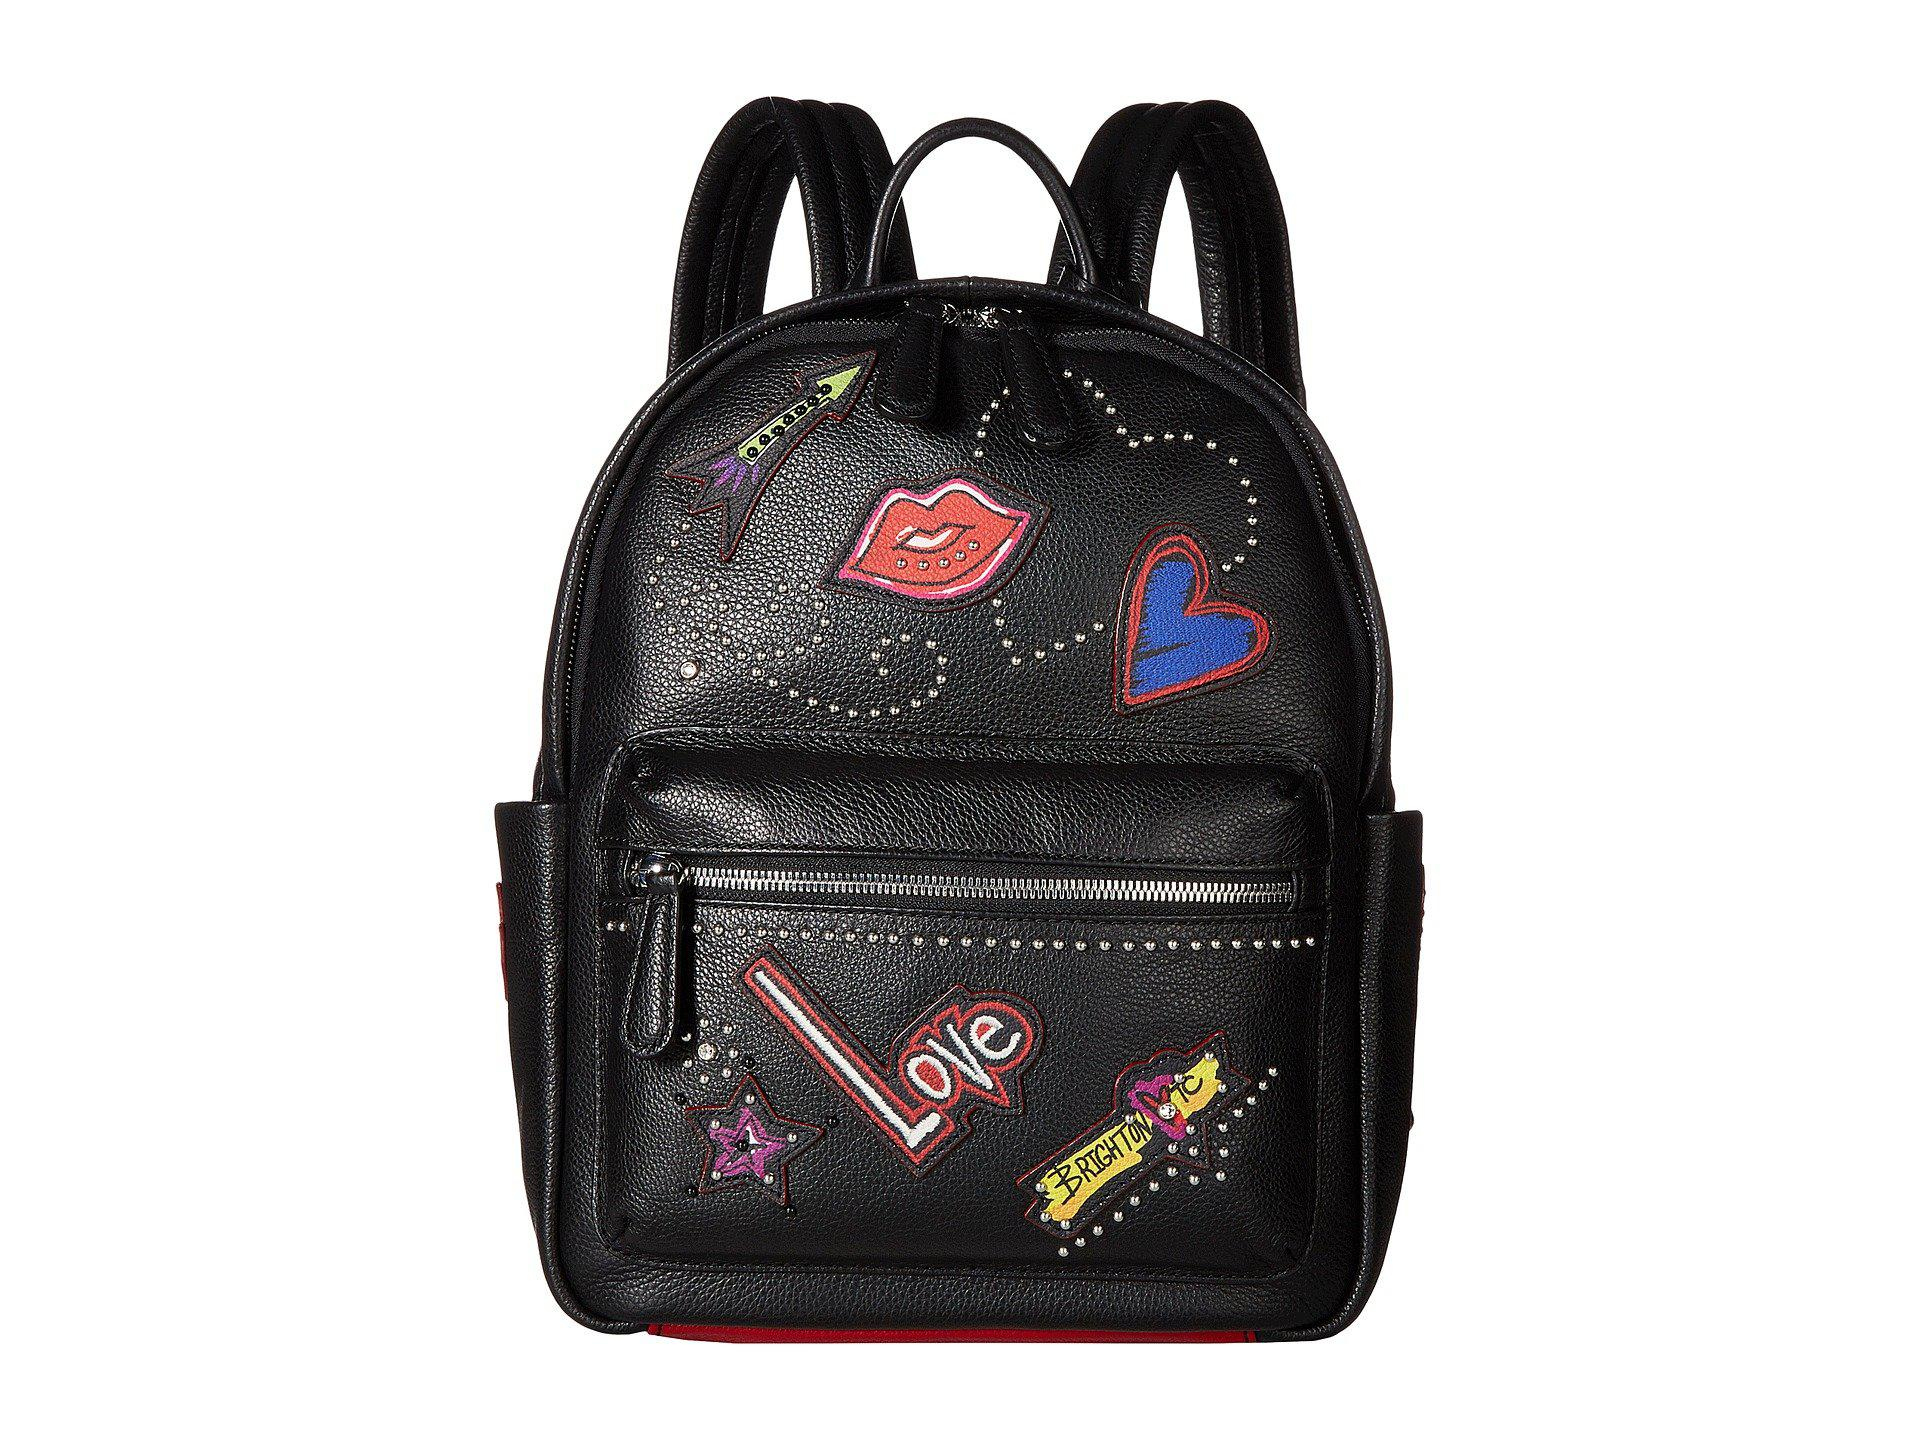 c6b227eec7 Lyst - Brighton Love Scribble Backpack in Black